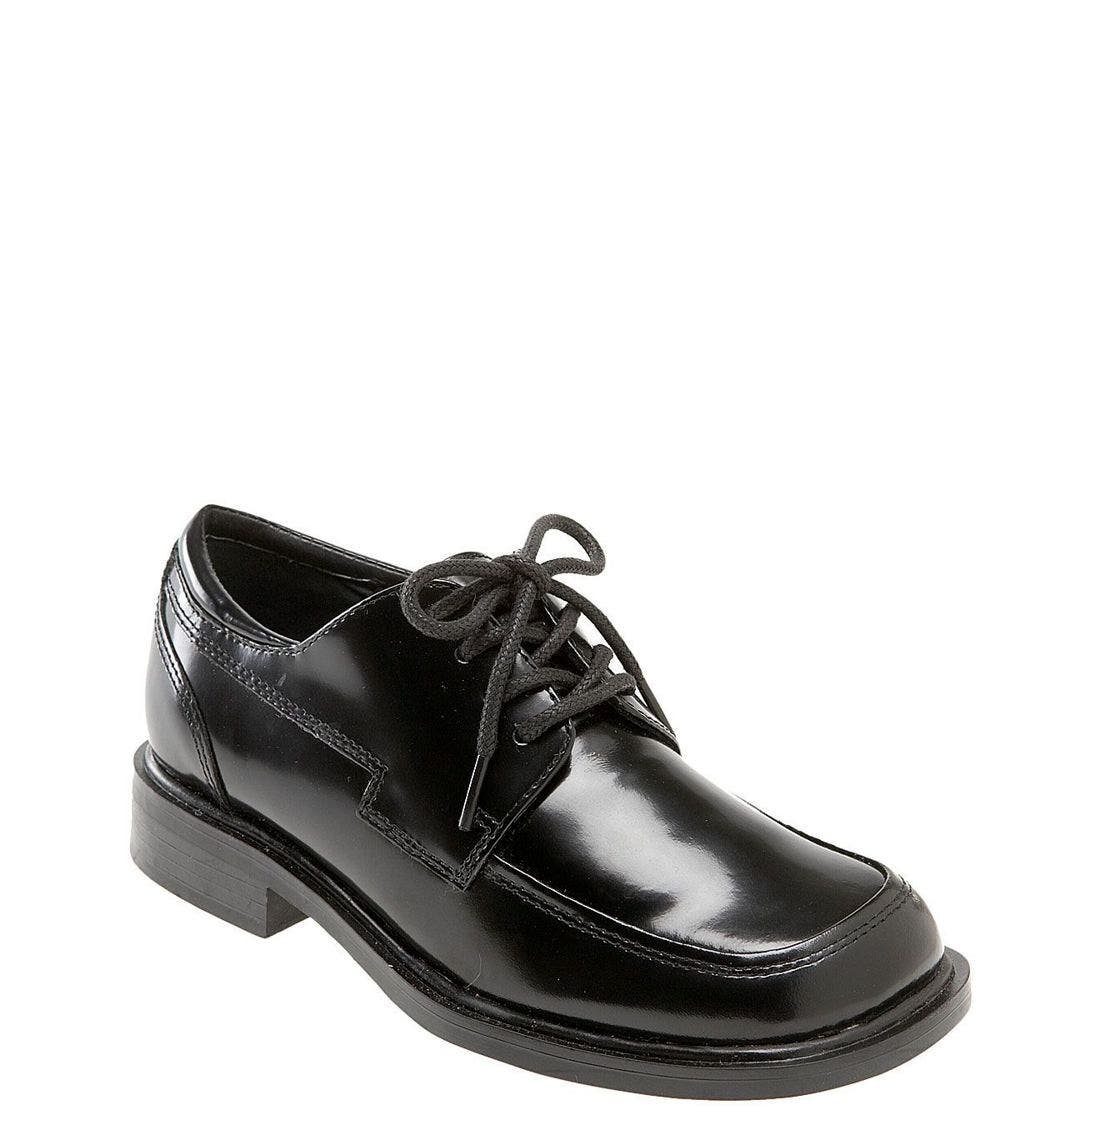 Main Image - Reaction Kenneth Cole 'T-Flex Senior' Oxford (Little Kid & Big Kid)